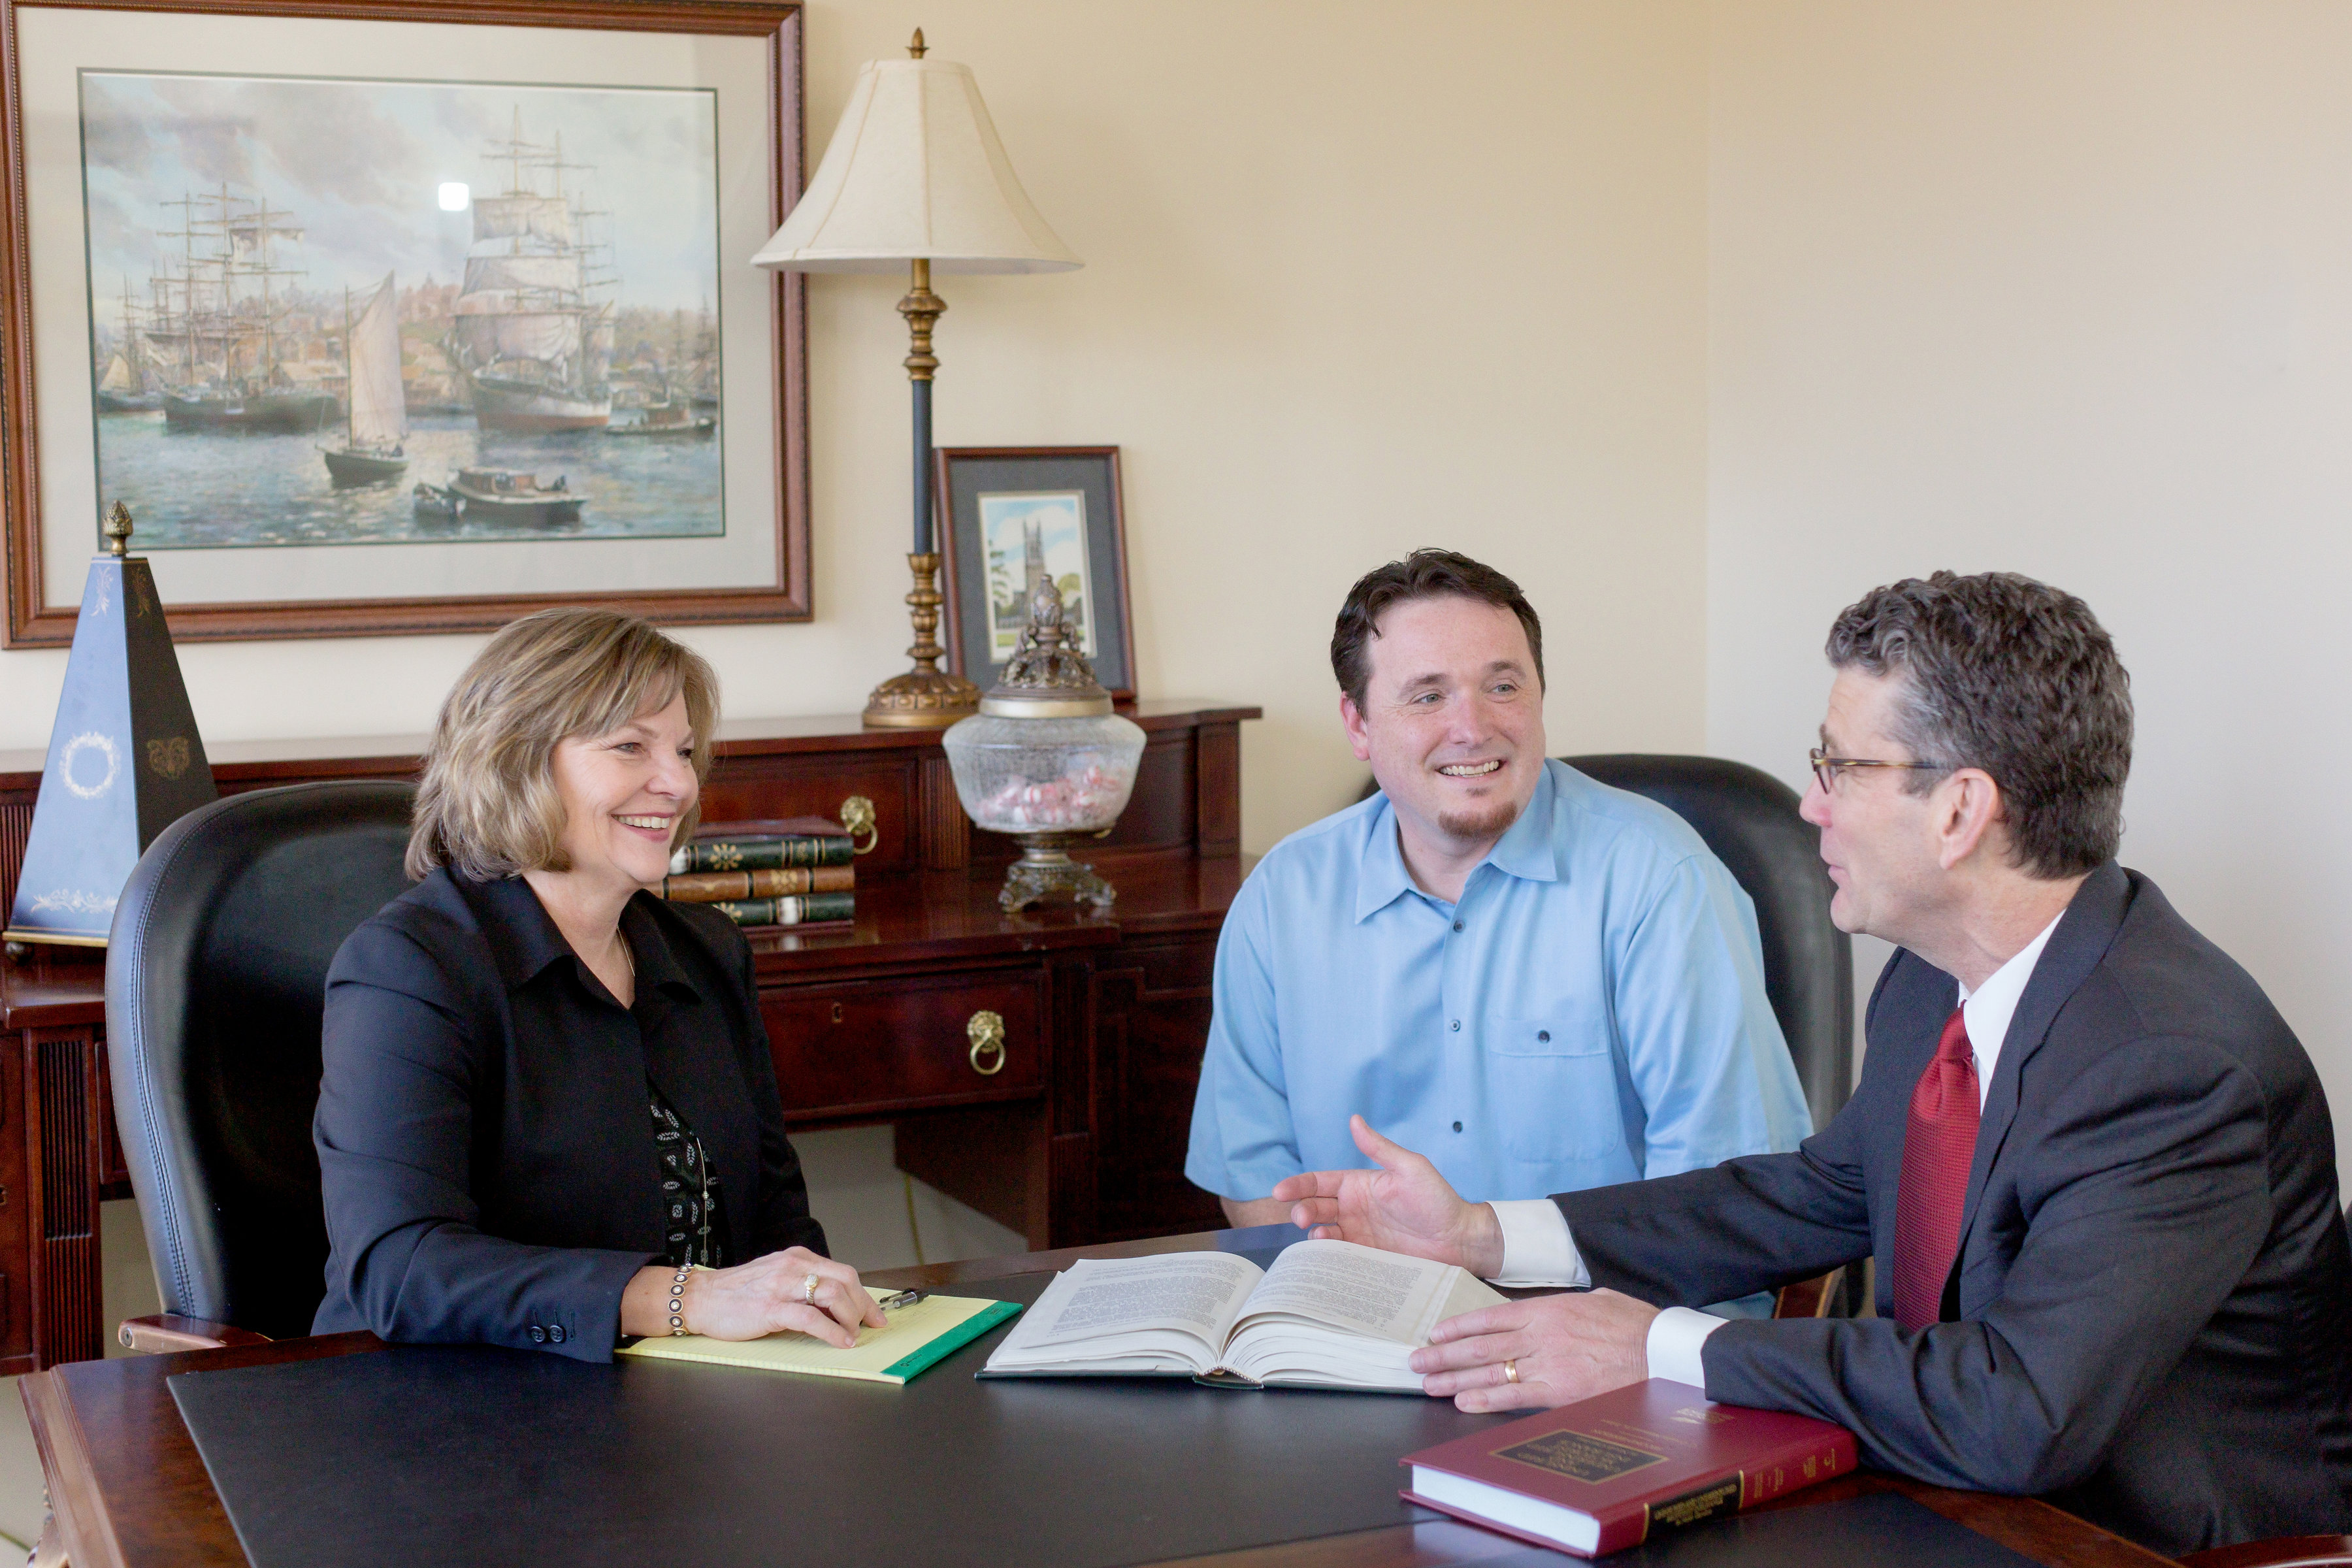 Maynard-Harris-Contact-Attorney-Winston-Salem-NC.JPG